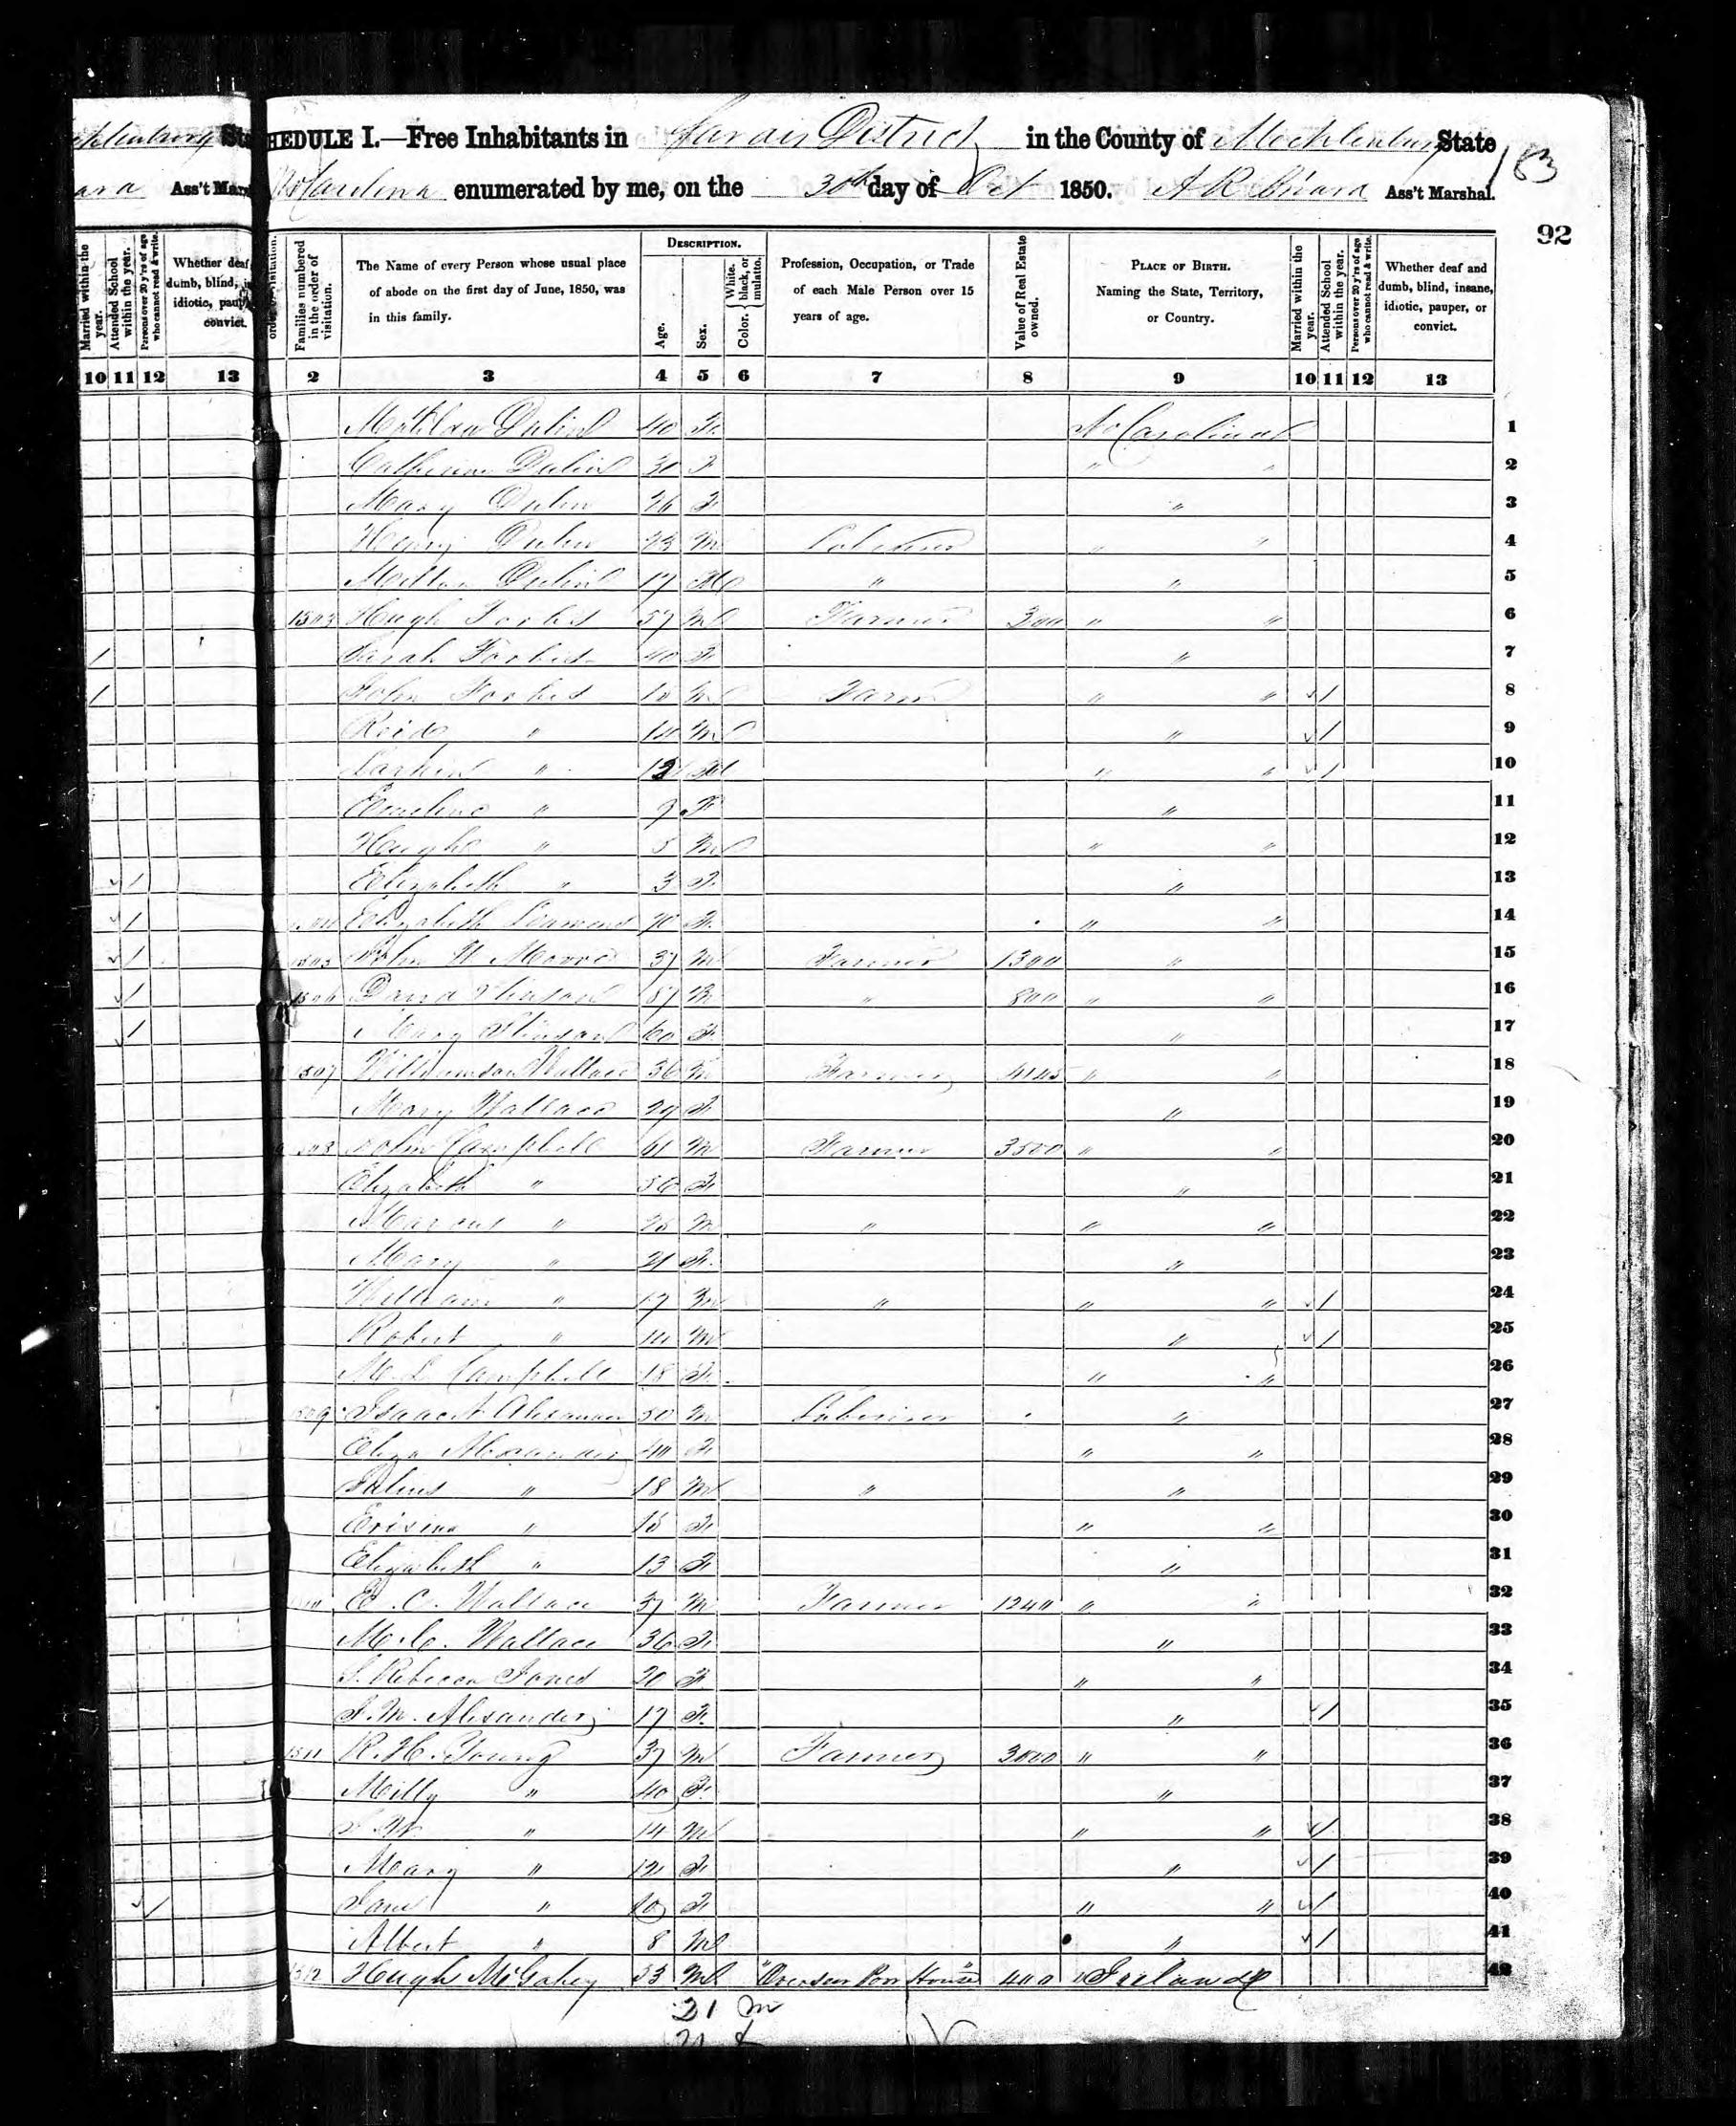 1850 Census, showing Poor House in Mecklenburg County